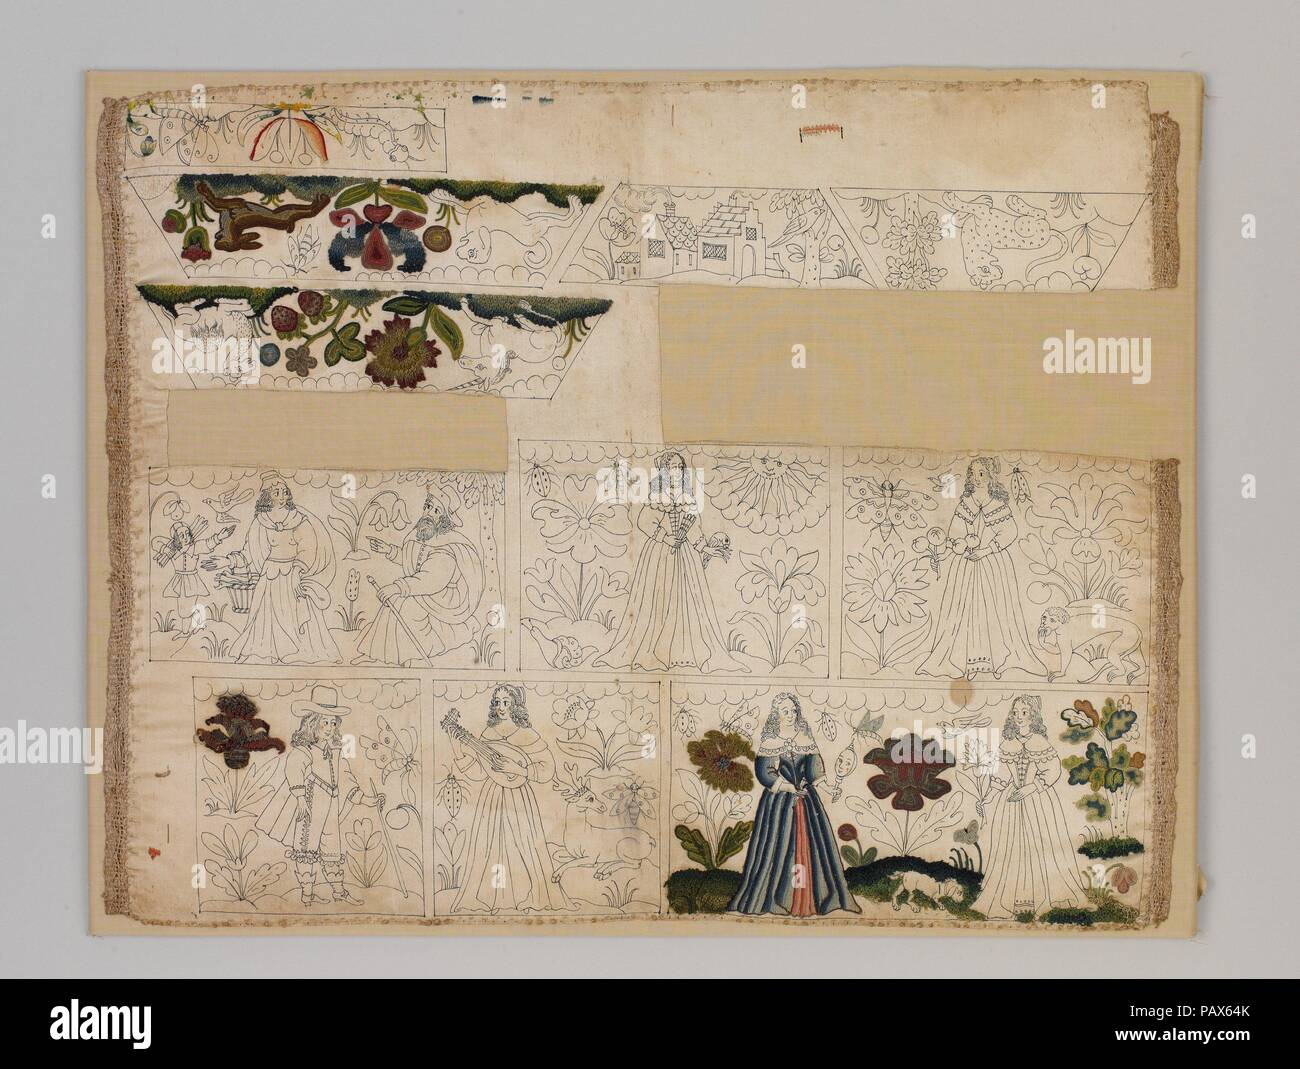 Unfinished cabinet panels. Culture: British. Dimensions: Overall: 17 1/2 × 22 in. (44.5 × 55.9 cm). Date: ca. 1660.  Rare unfinished pieces of embroidery like this one can reveal much about the process of planning and executing needlework. In this case, the squares and rectangles were intended to be cut out and applied to a wooden box frame to make a small cabinet. The design was drawn on the silk foundation with ink. It is likely that some details were meant to be left unembroidered, as suggested by the painted pale pink cheeks of the woman in the blue dress and her reflection in the mirror s - Stock Image